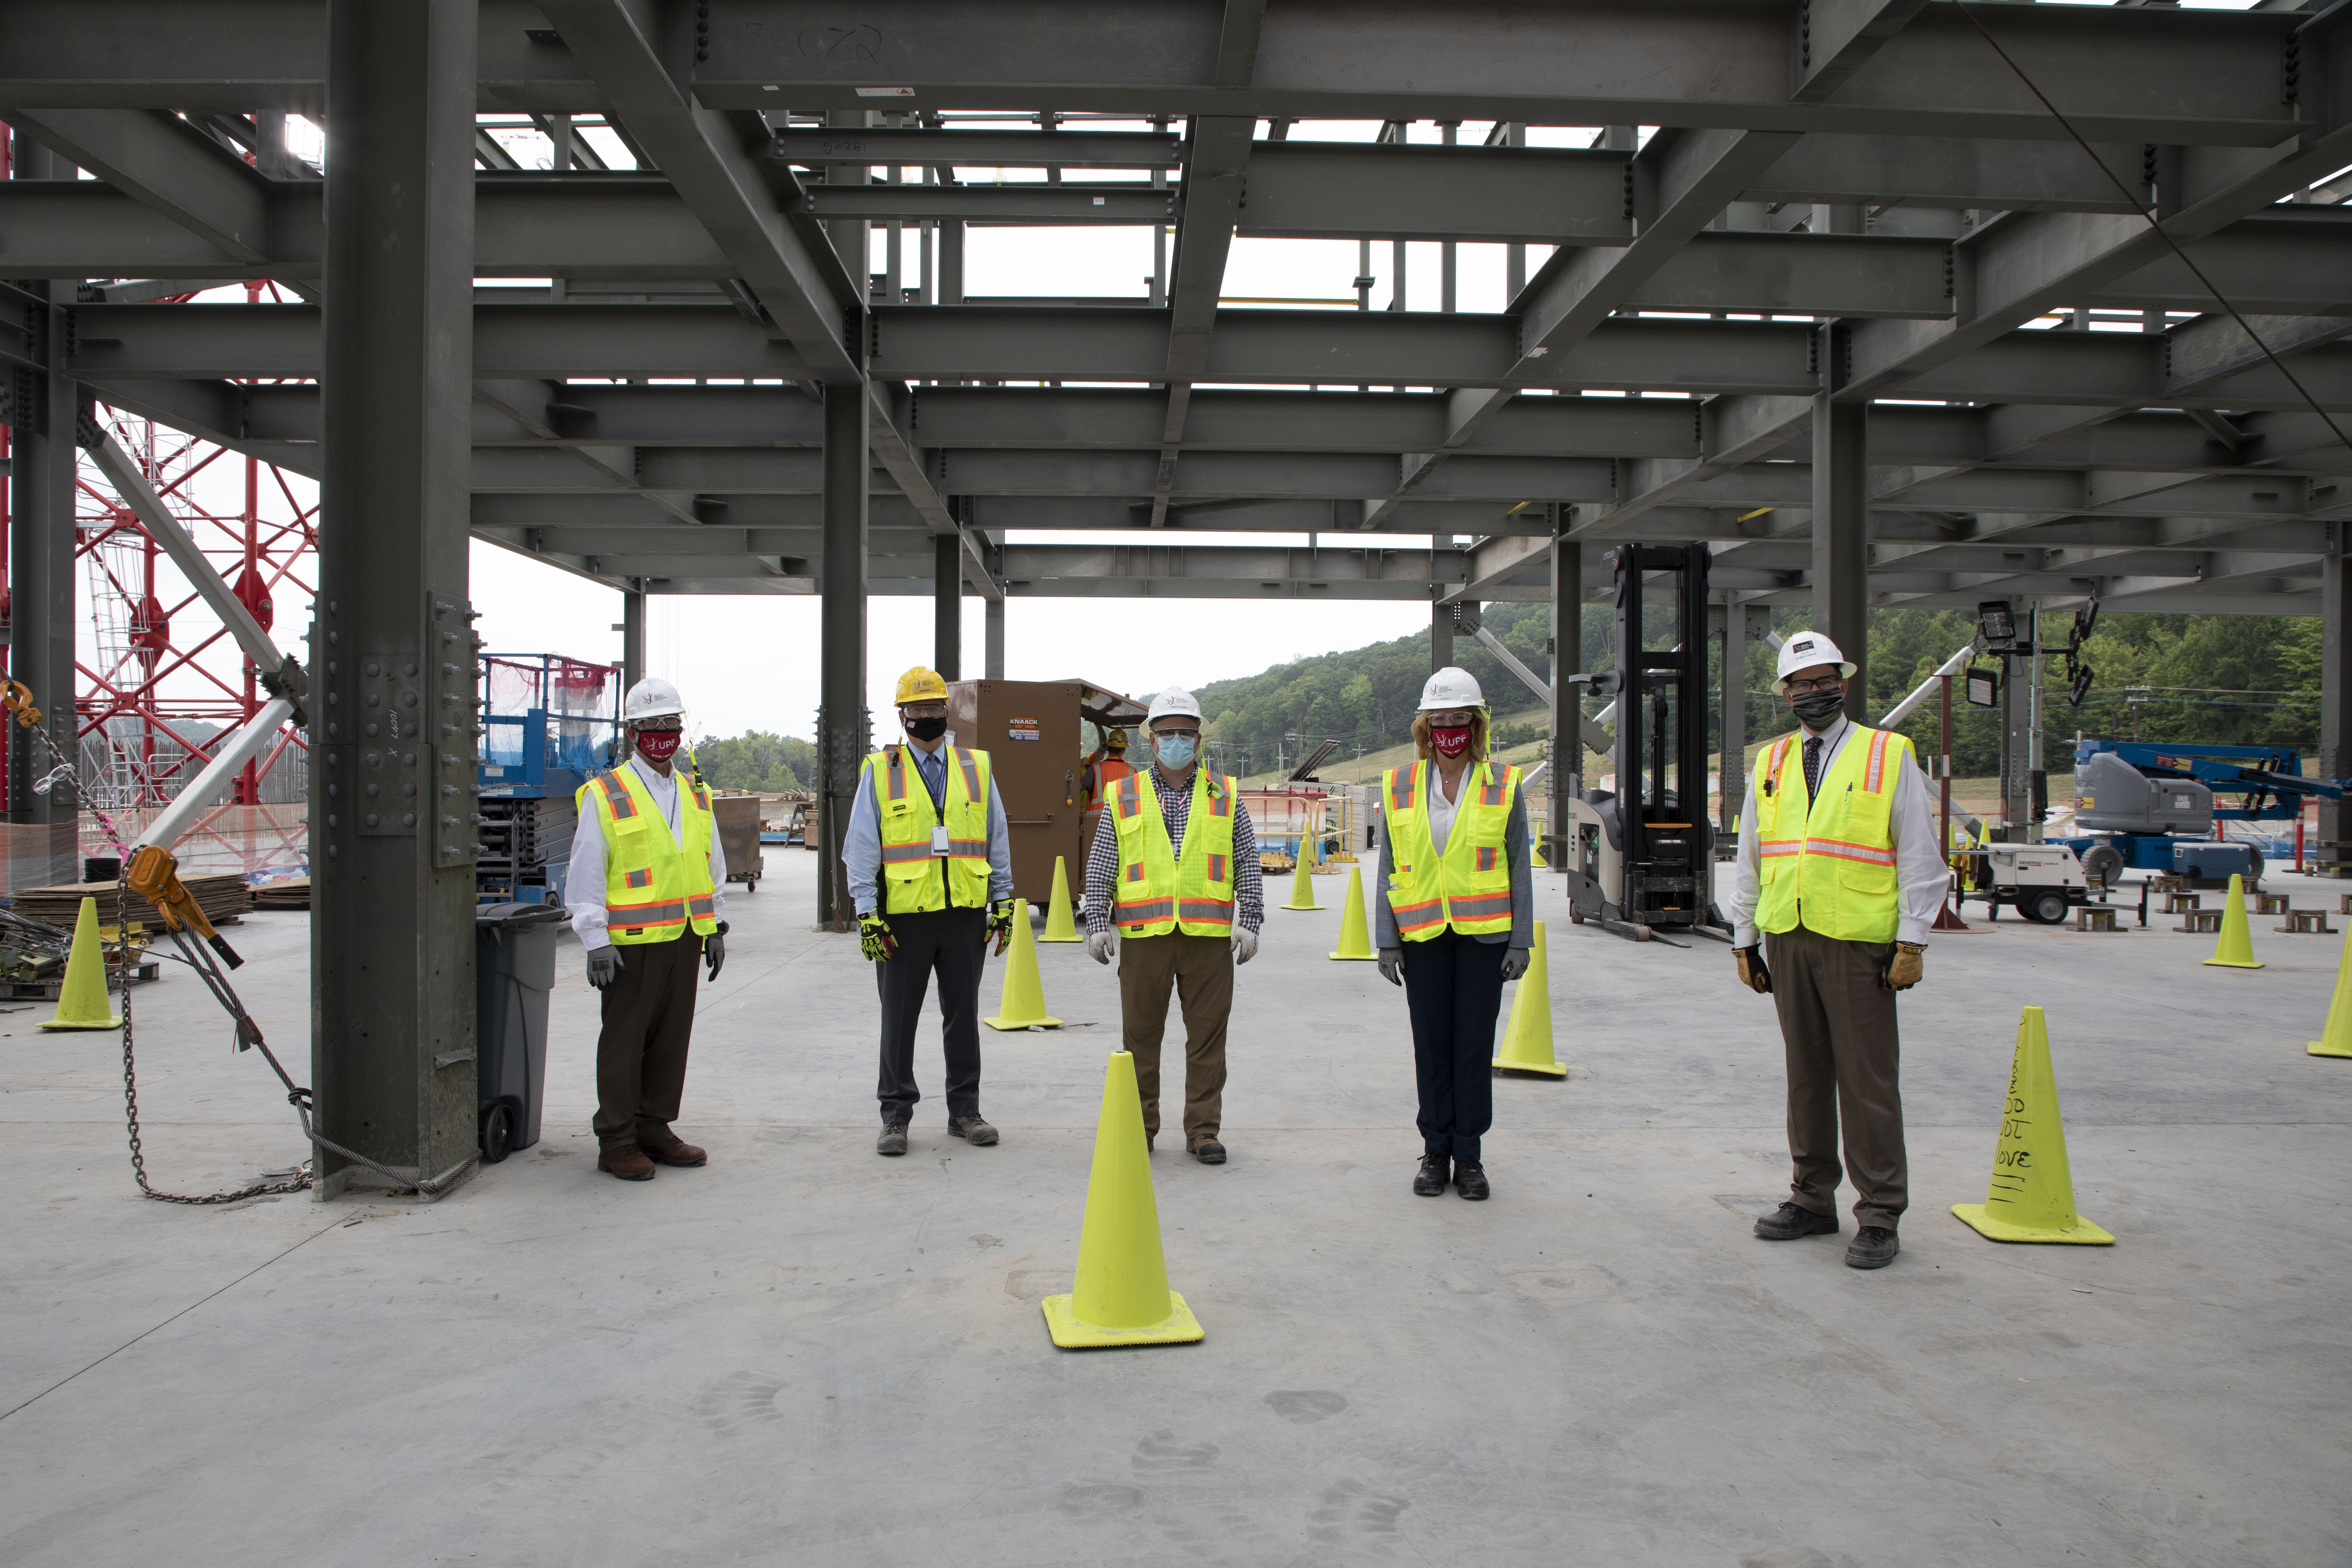 From left: Doug Fremont, NNSA chief of staff; John Howanitz, UPF project director; Randy Holman, UPF area manager for the Salvage and Accountability Building; NNSA Administrator Lisa Gordon-Hagerty; and Dale Christenson, UPF federal project director during the administrator's visit to Y-12 on August 27, 2020